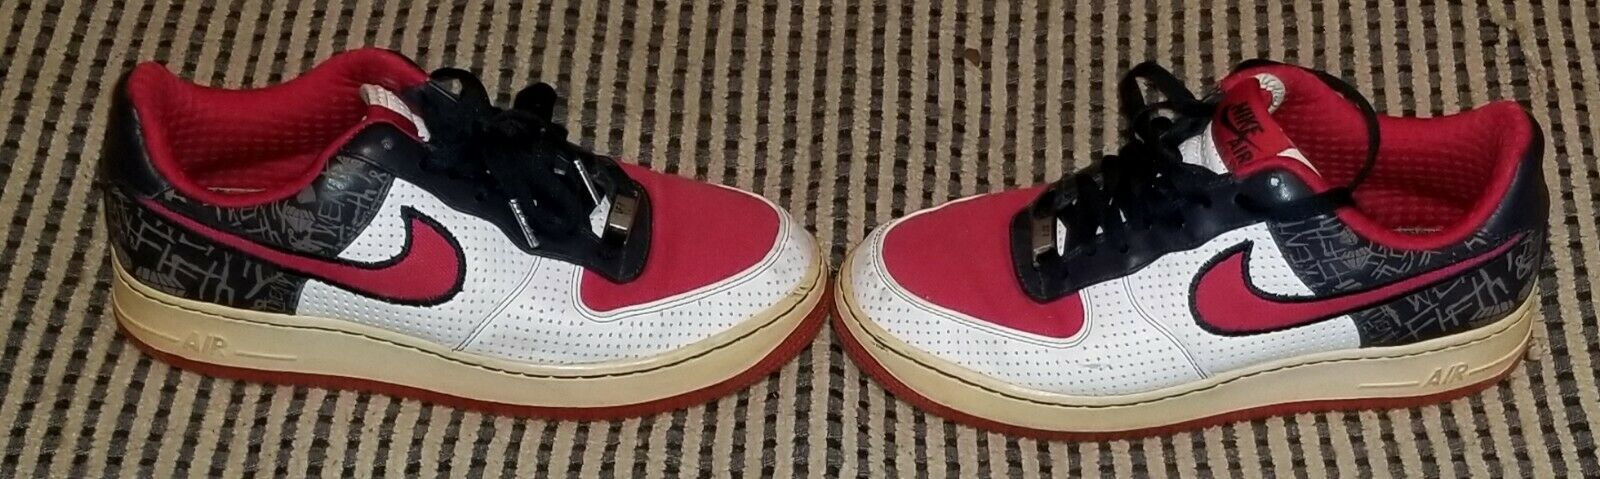 VTG 2006 Nike Air Force 1 Low XXV Anniversary 82' North Philly 8.5m Diamond St.